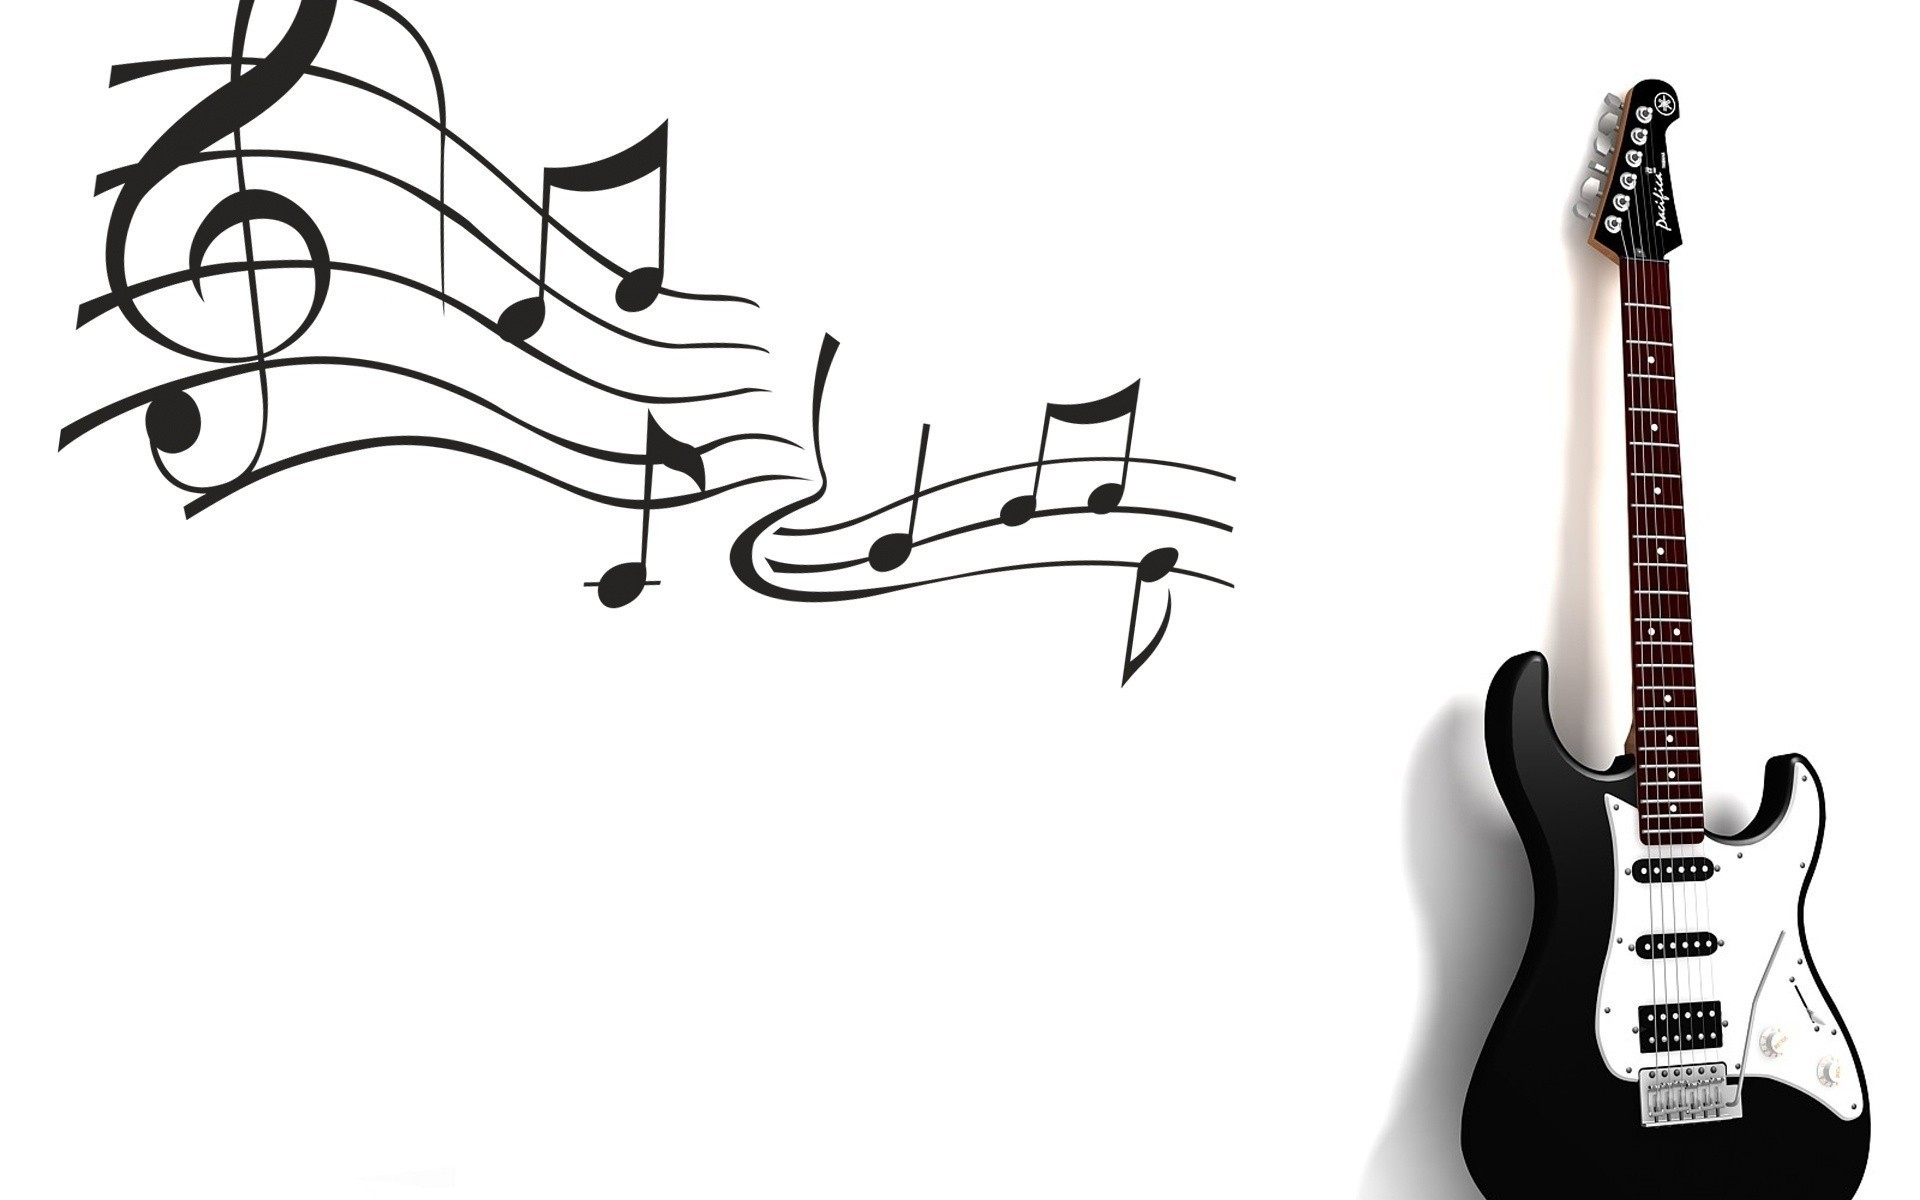 Diverting Desk Music Musical Notes Abstract Wallpaper Background Musical Notes Wallpapers Background Music Notes Wallpaper Border Music Notes Wallpaper Hd houzz-02 Music Notes Wallpaper